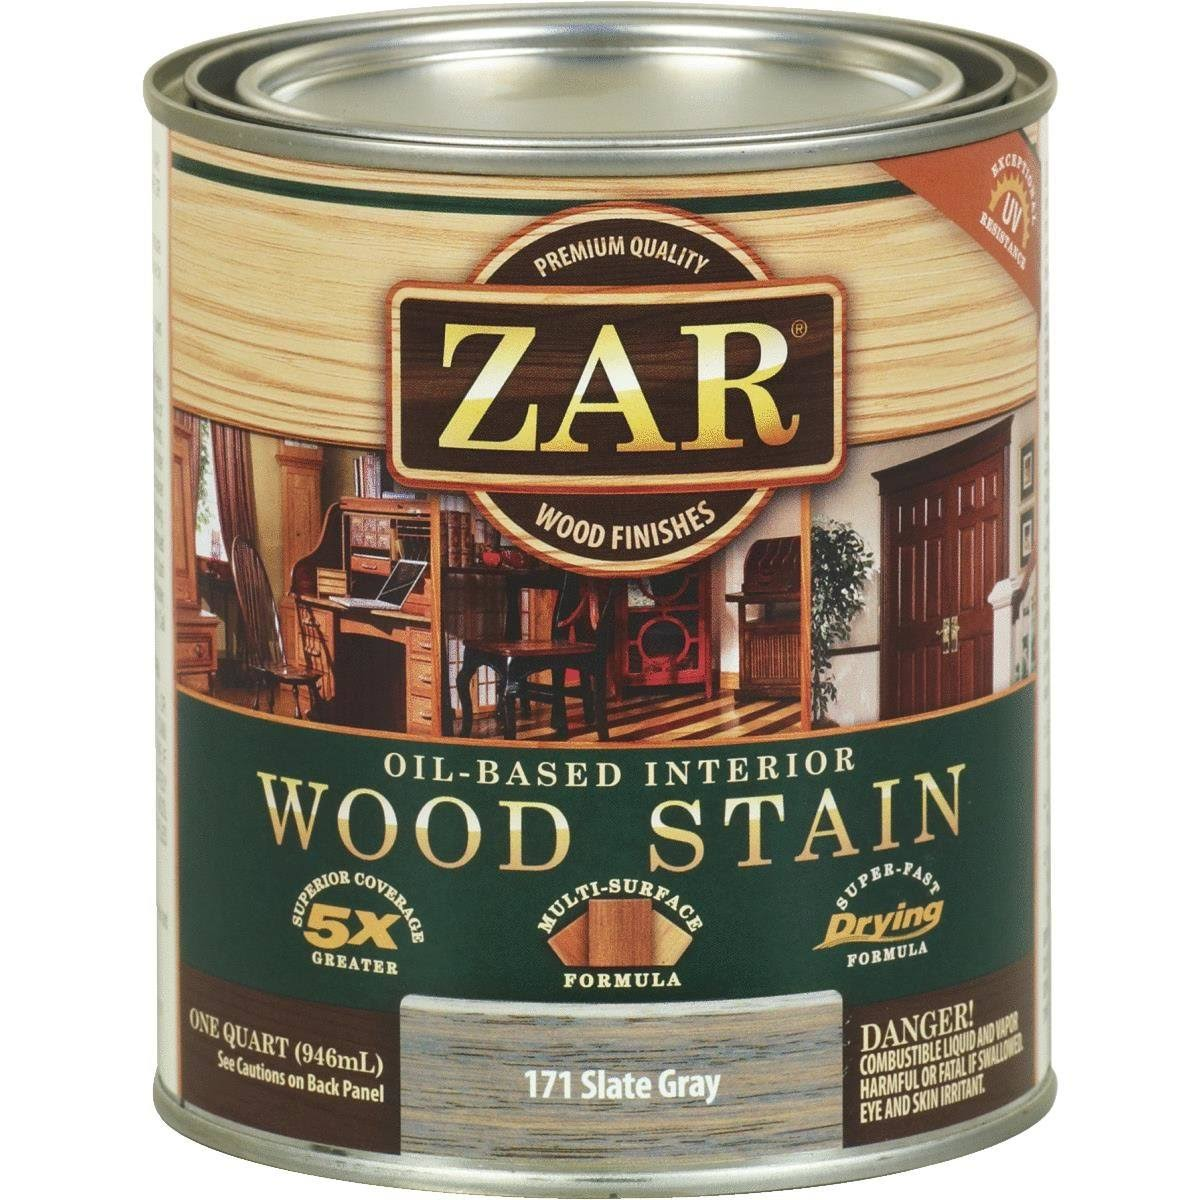 Zar Oil-based Interior Wood Stain - 1171 Slate Gray, 1qt